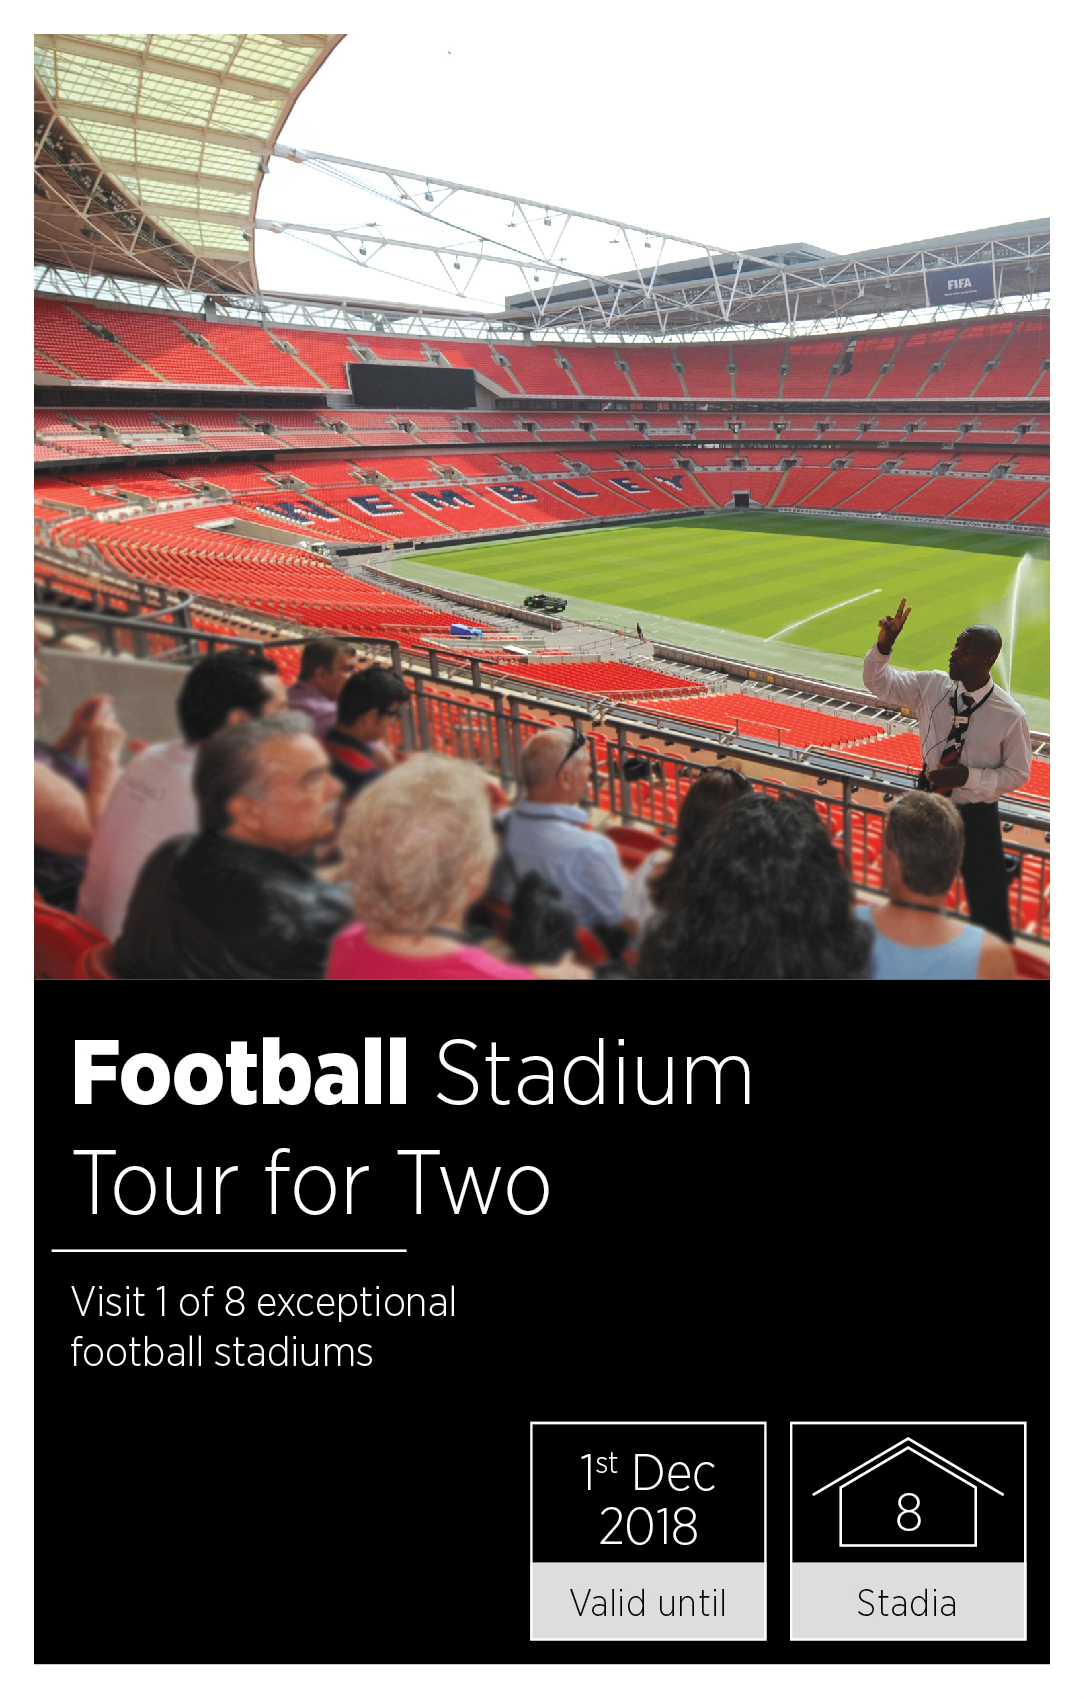 Football Stadium for 2